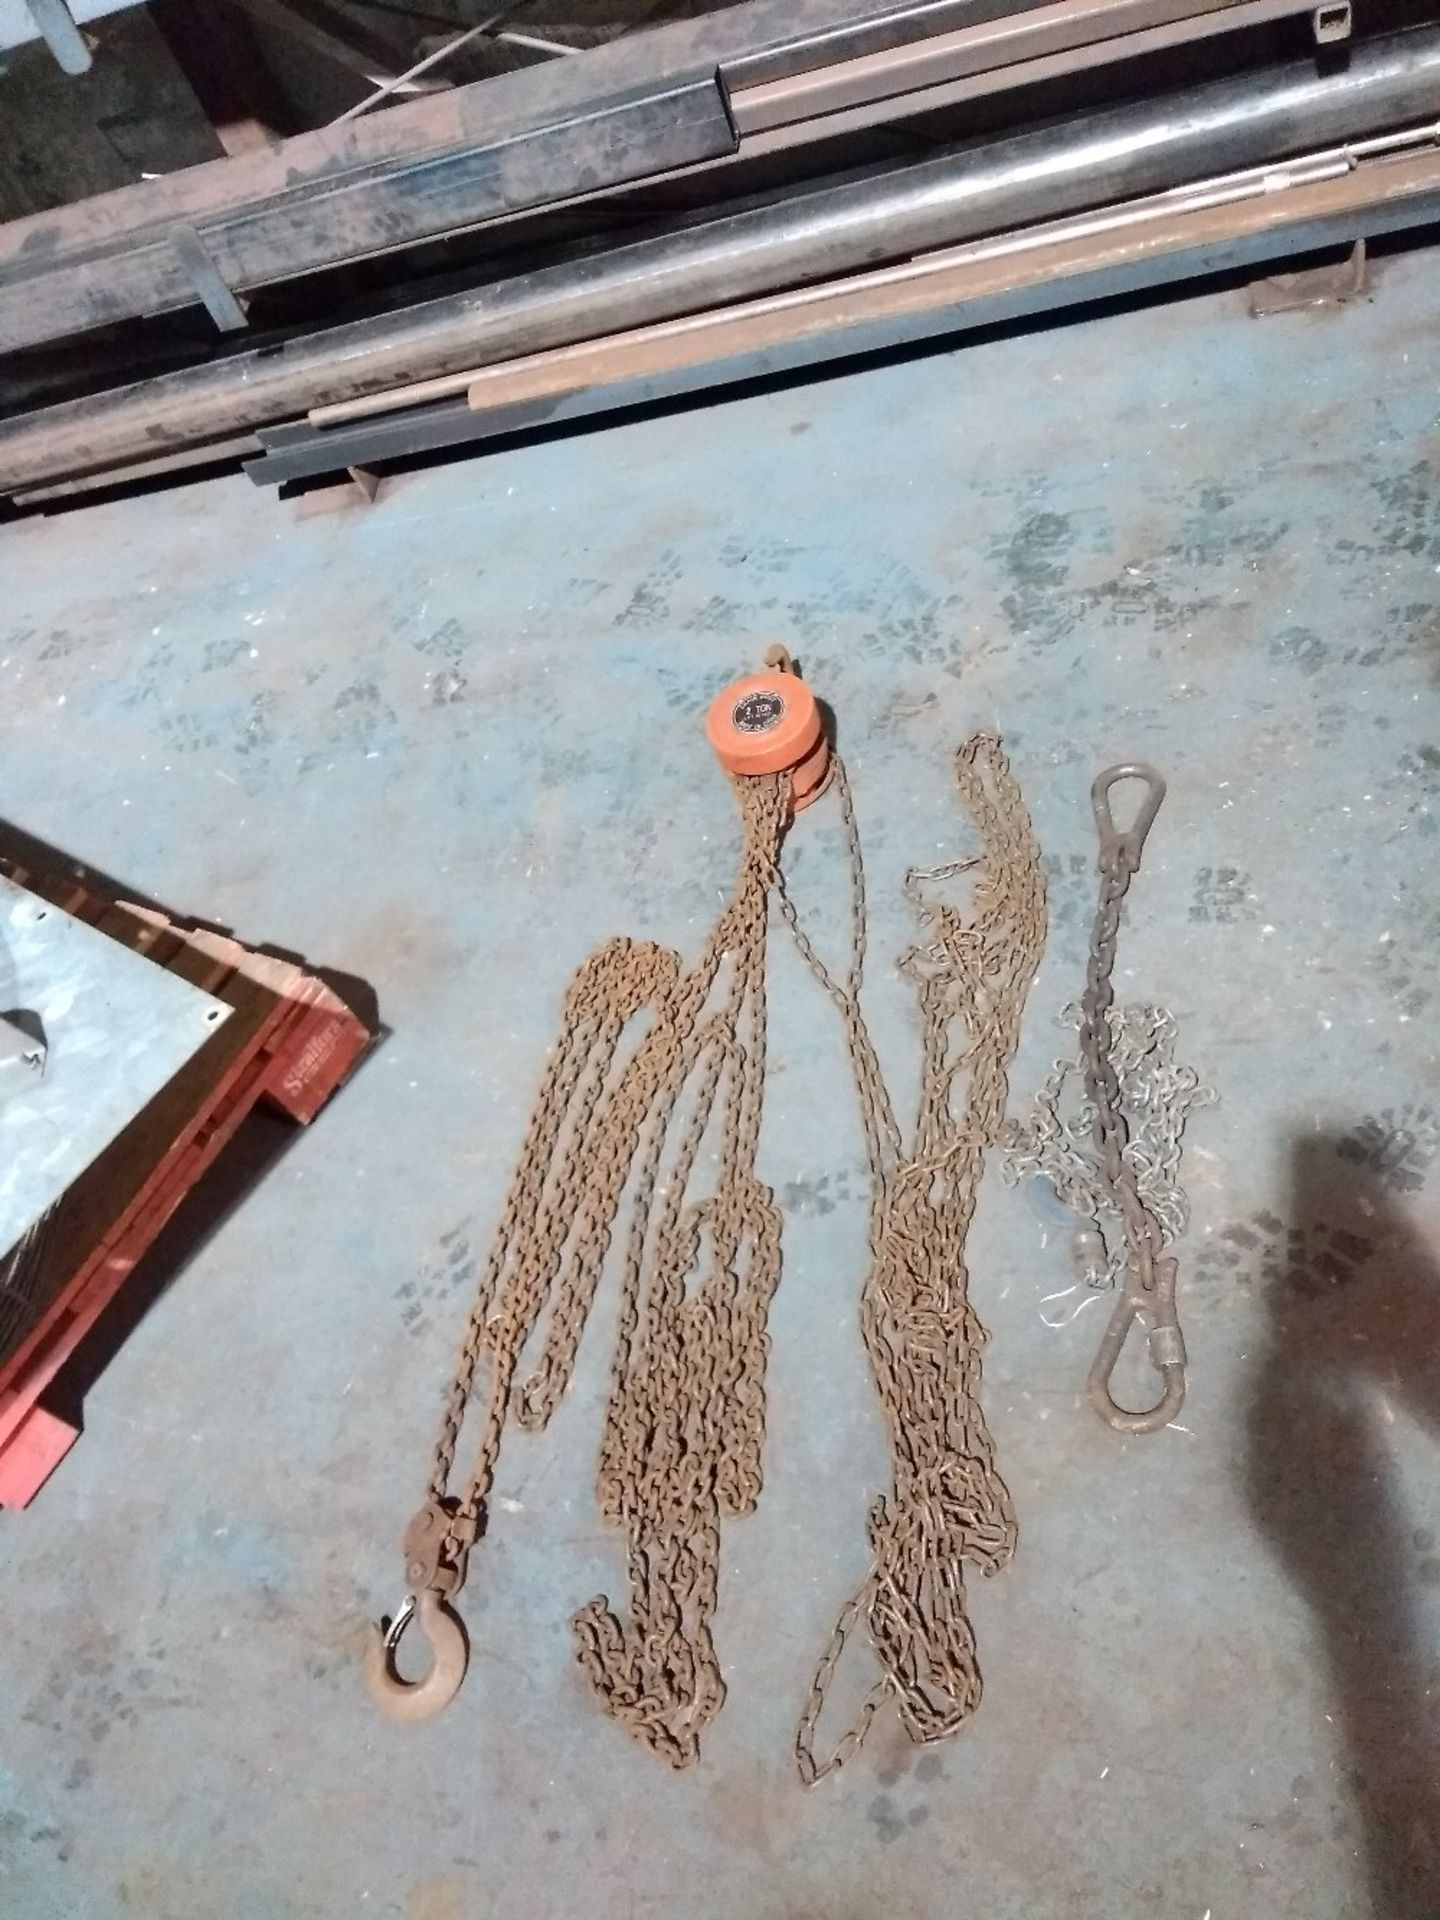 Lot 21 - 2t Chain block and chains. No VAT on this item.